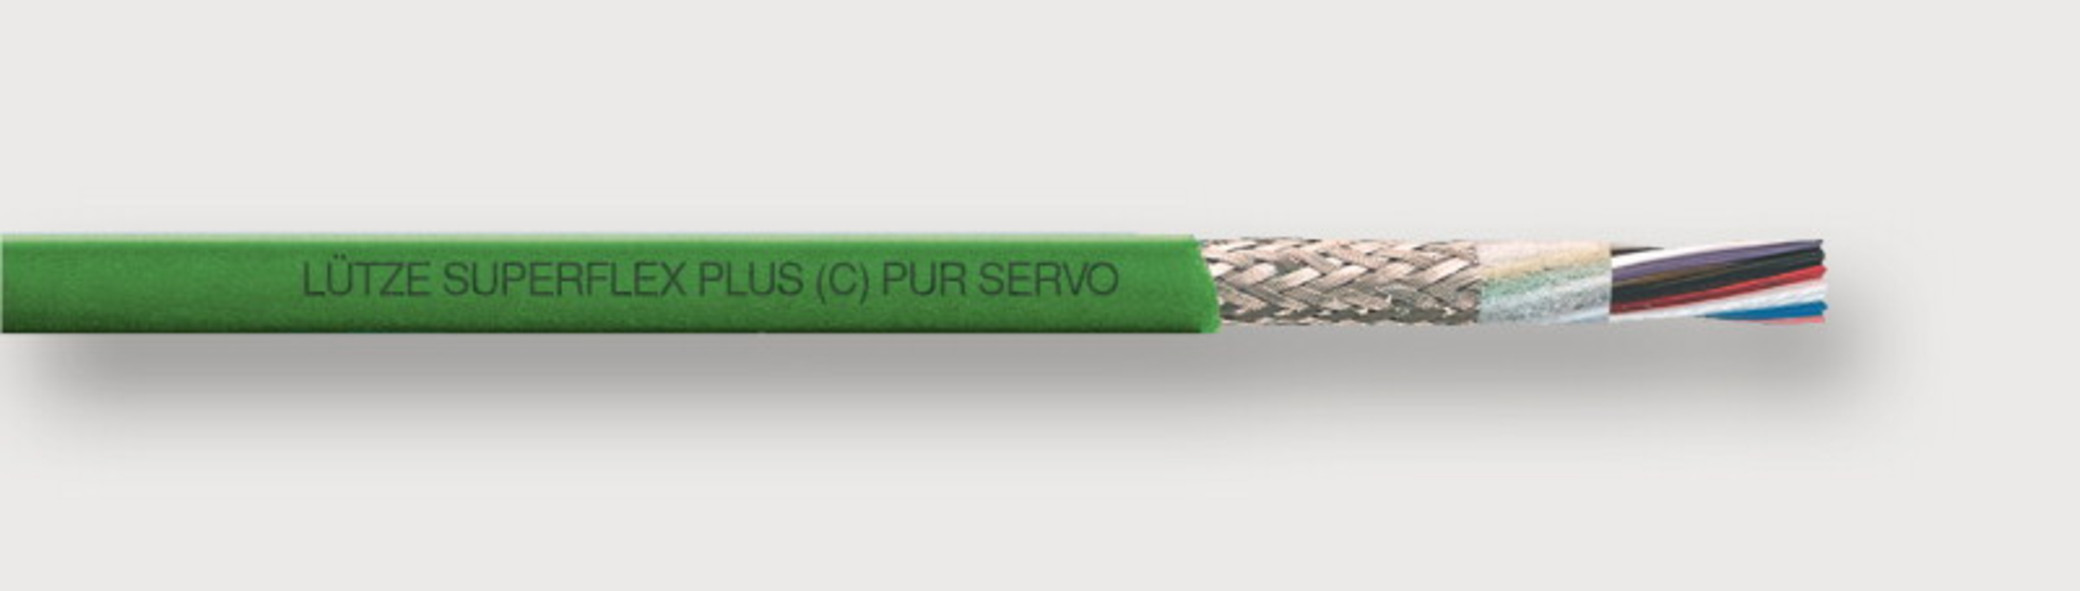 111456 - LÜTZE SUPERFLEX® PLUS (C) PUR FEEDBACK Encoder cables for Siemens and other systems For highest requirements in drive technology